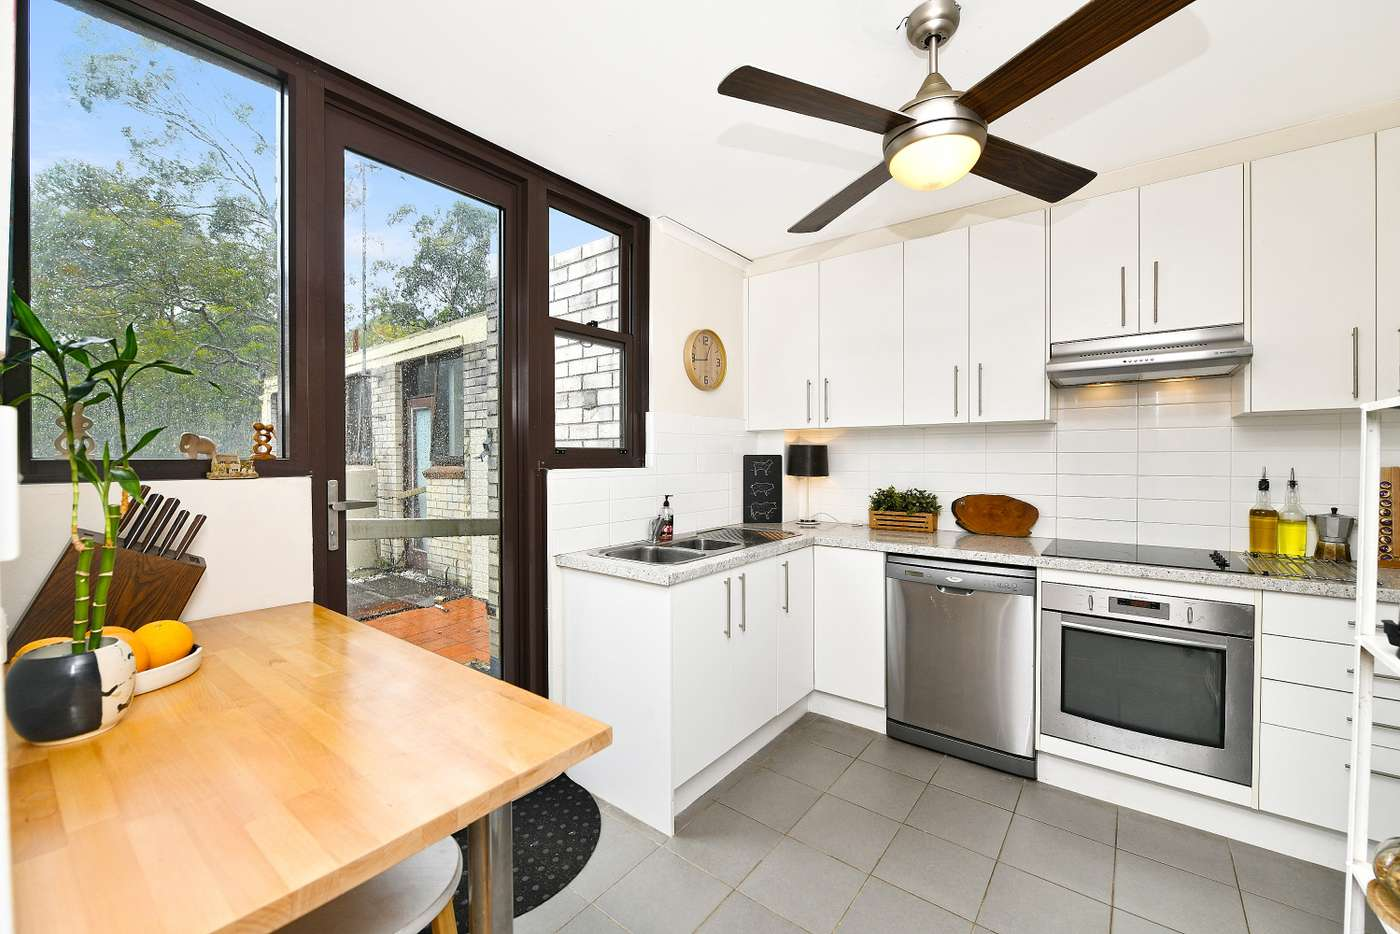 Main view of Homely apartment listing, 6/8 Murray St, Lane Cove North NSW 2066